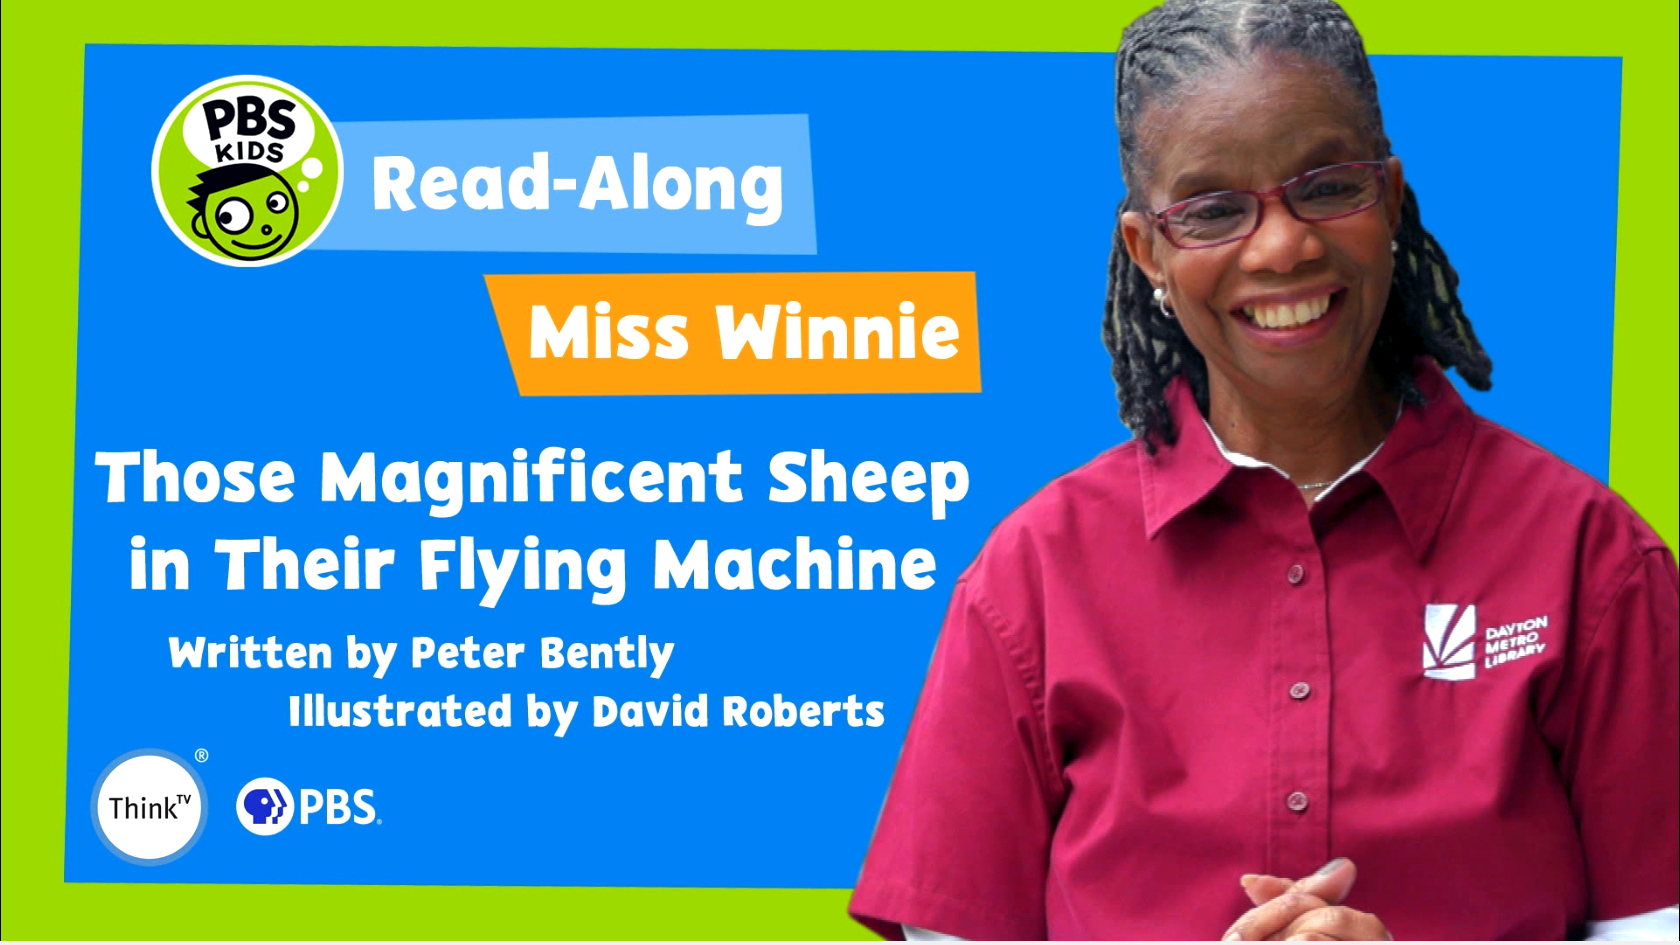 Those Magnificent Sheep and Their Flying Machine by Peter Bently